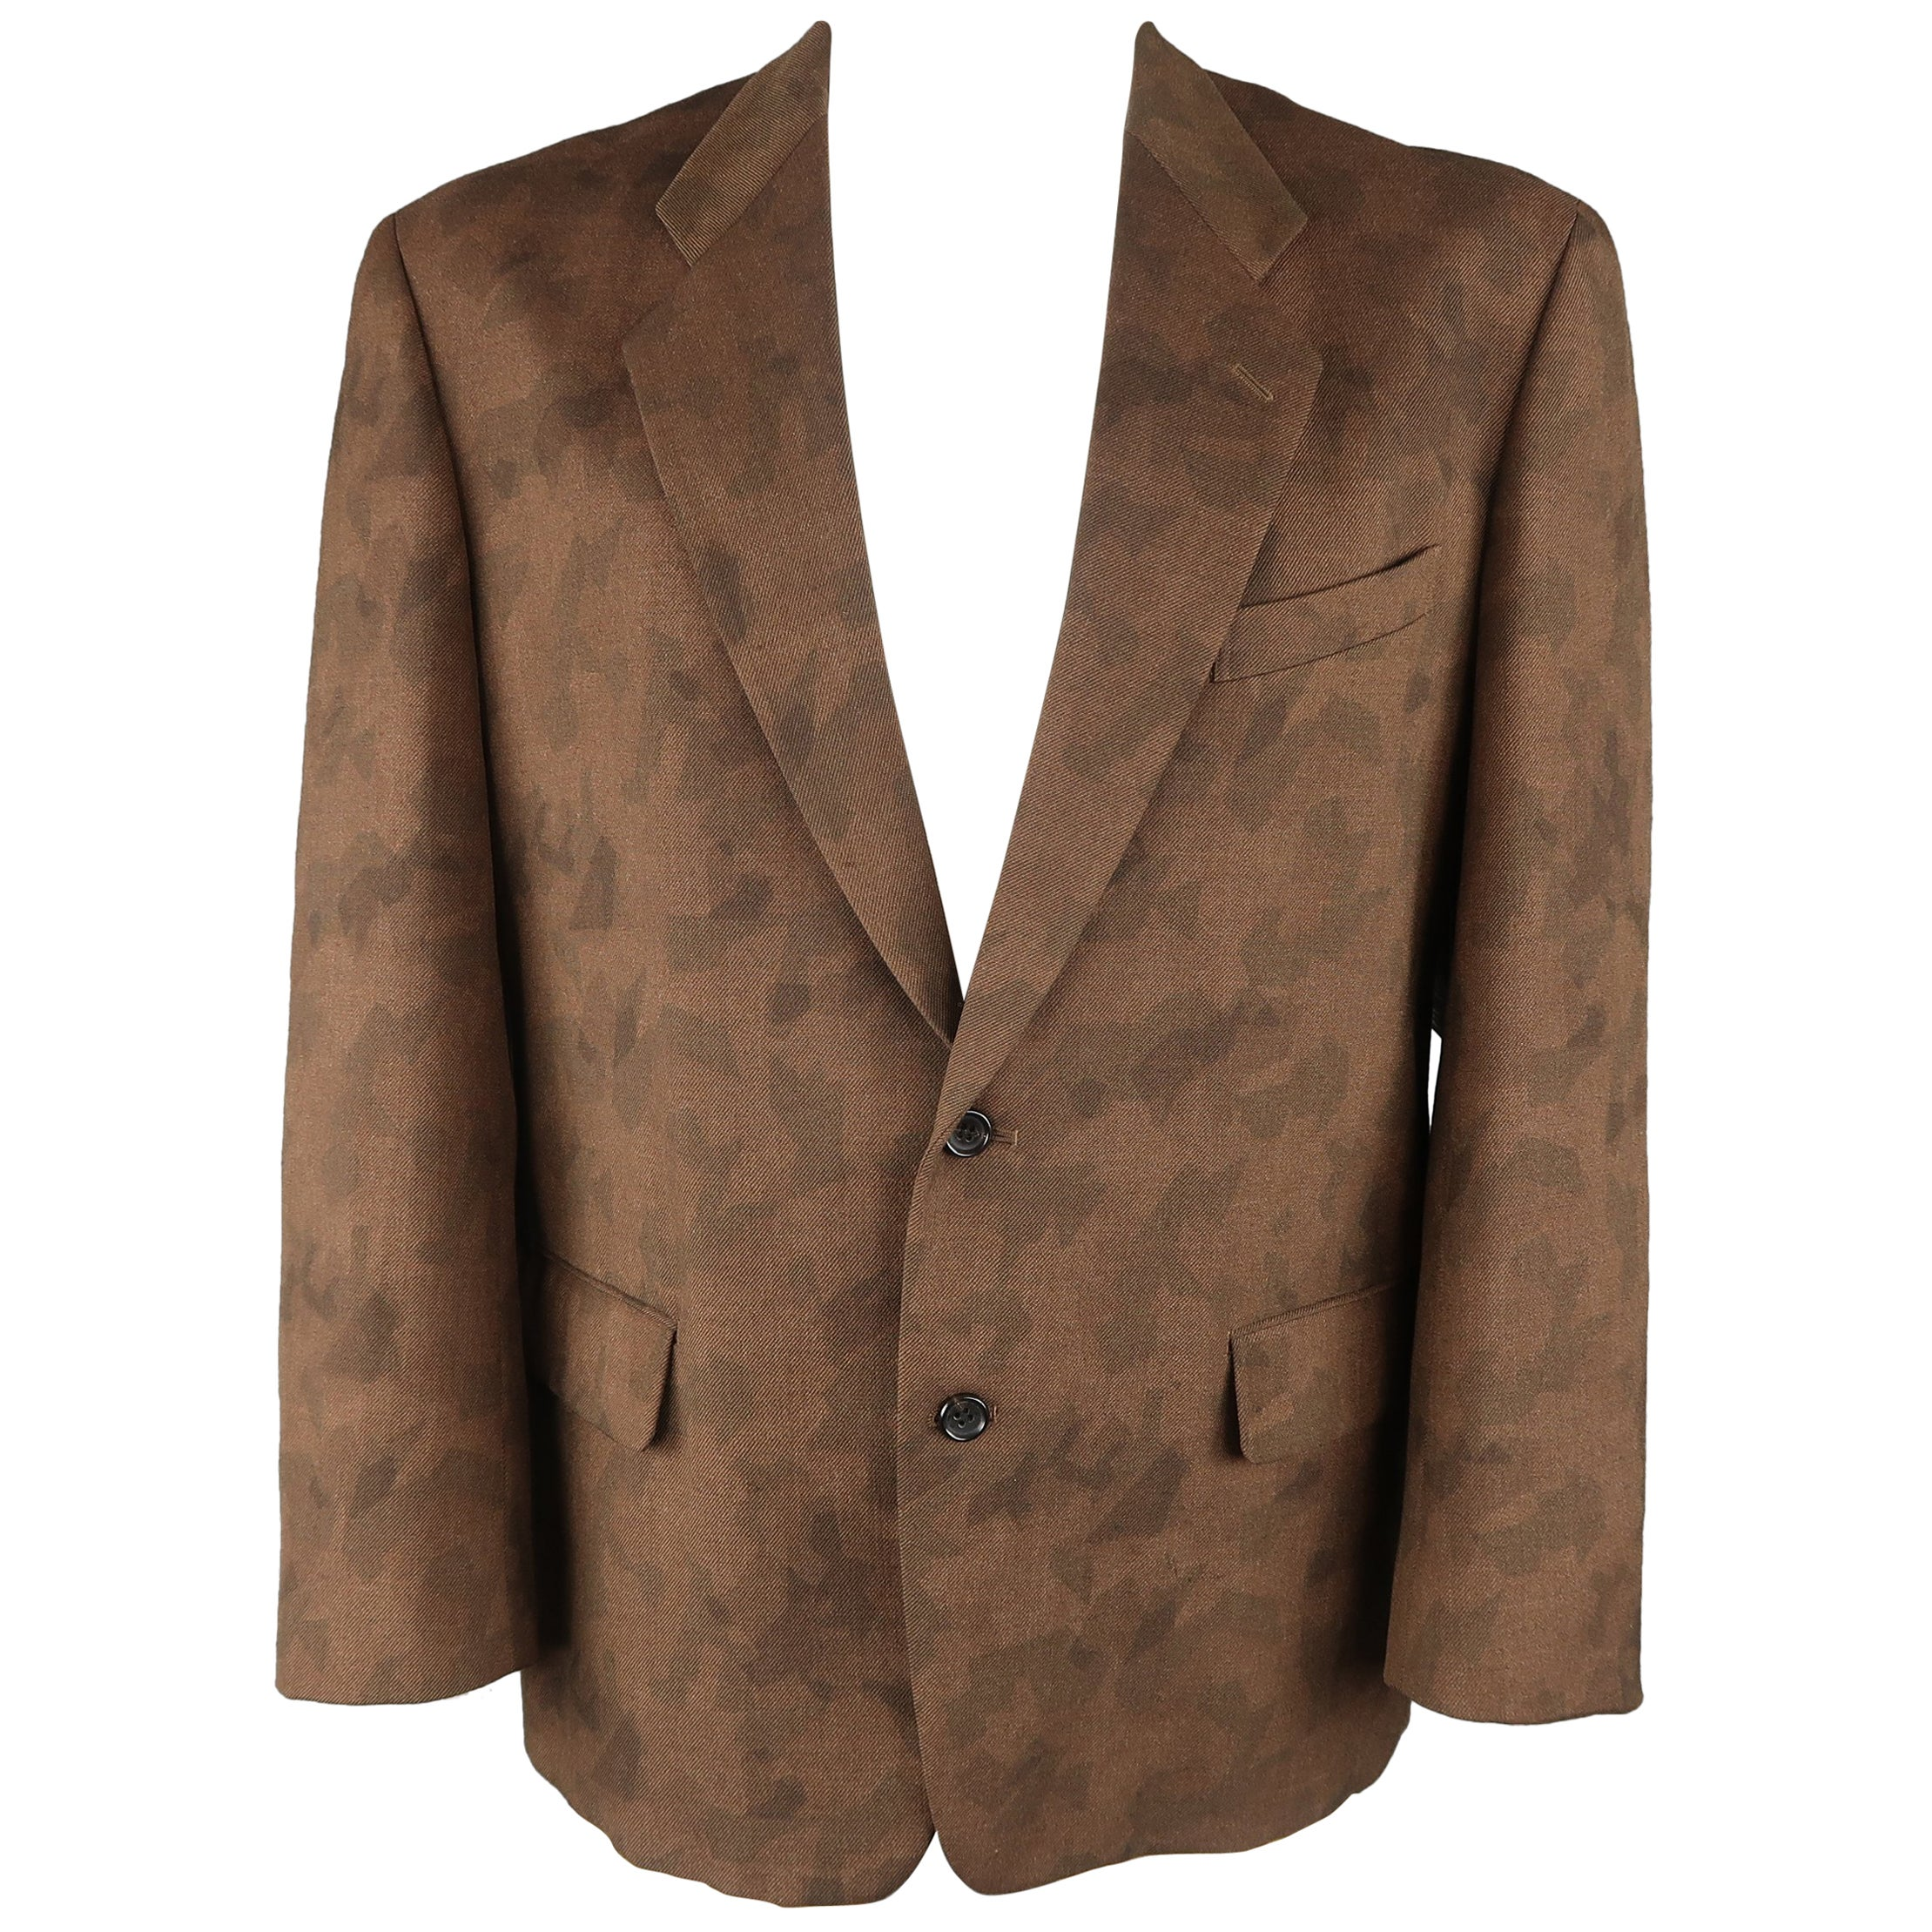 b384468aad34f Comme Des Garcons Vintage Brown Camouflage Wool Notch Lapel Sport Coat  Jacket at 1stdibs